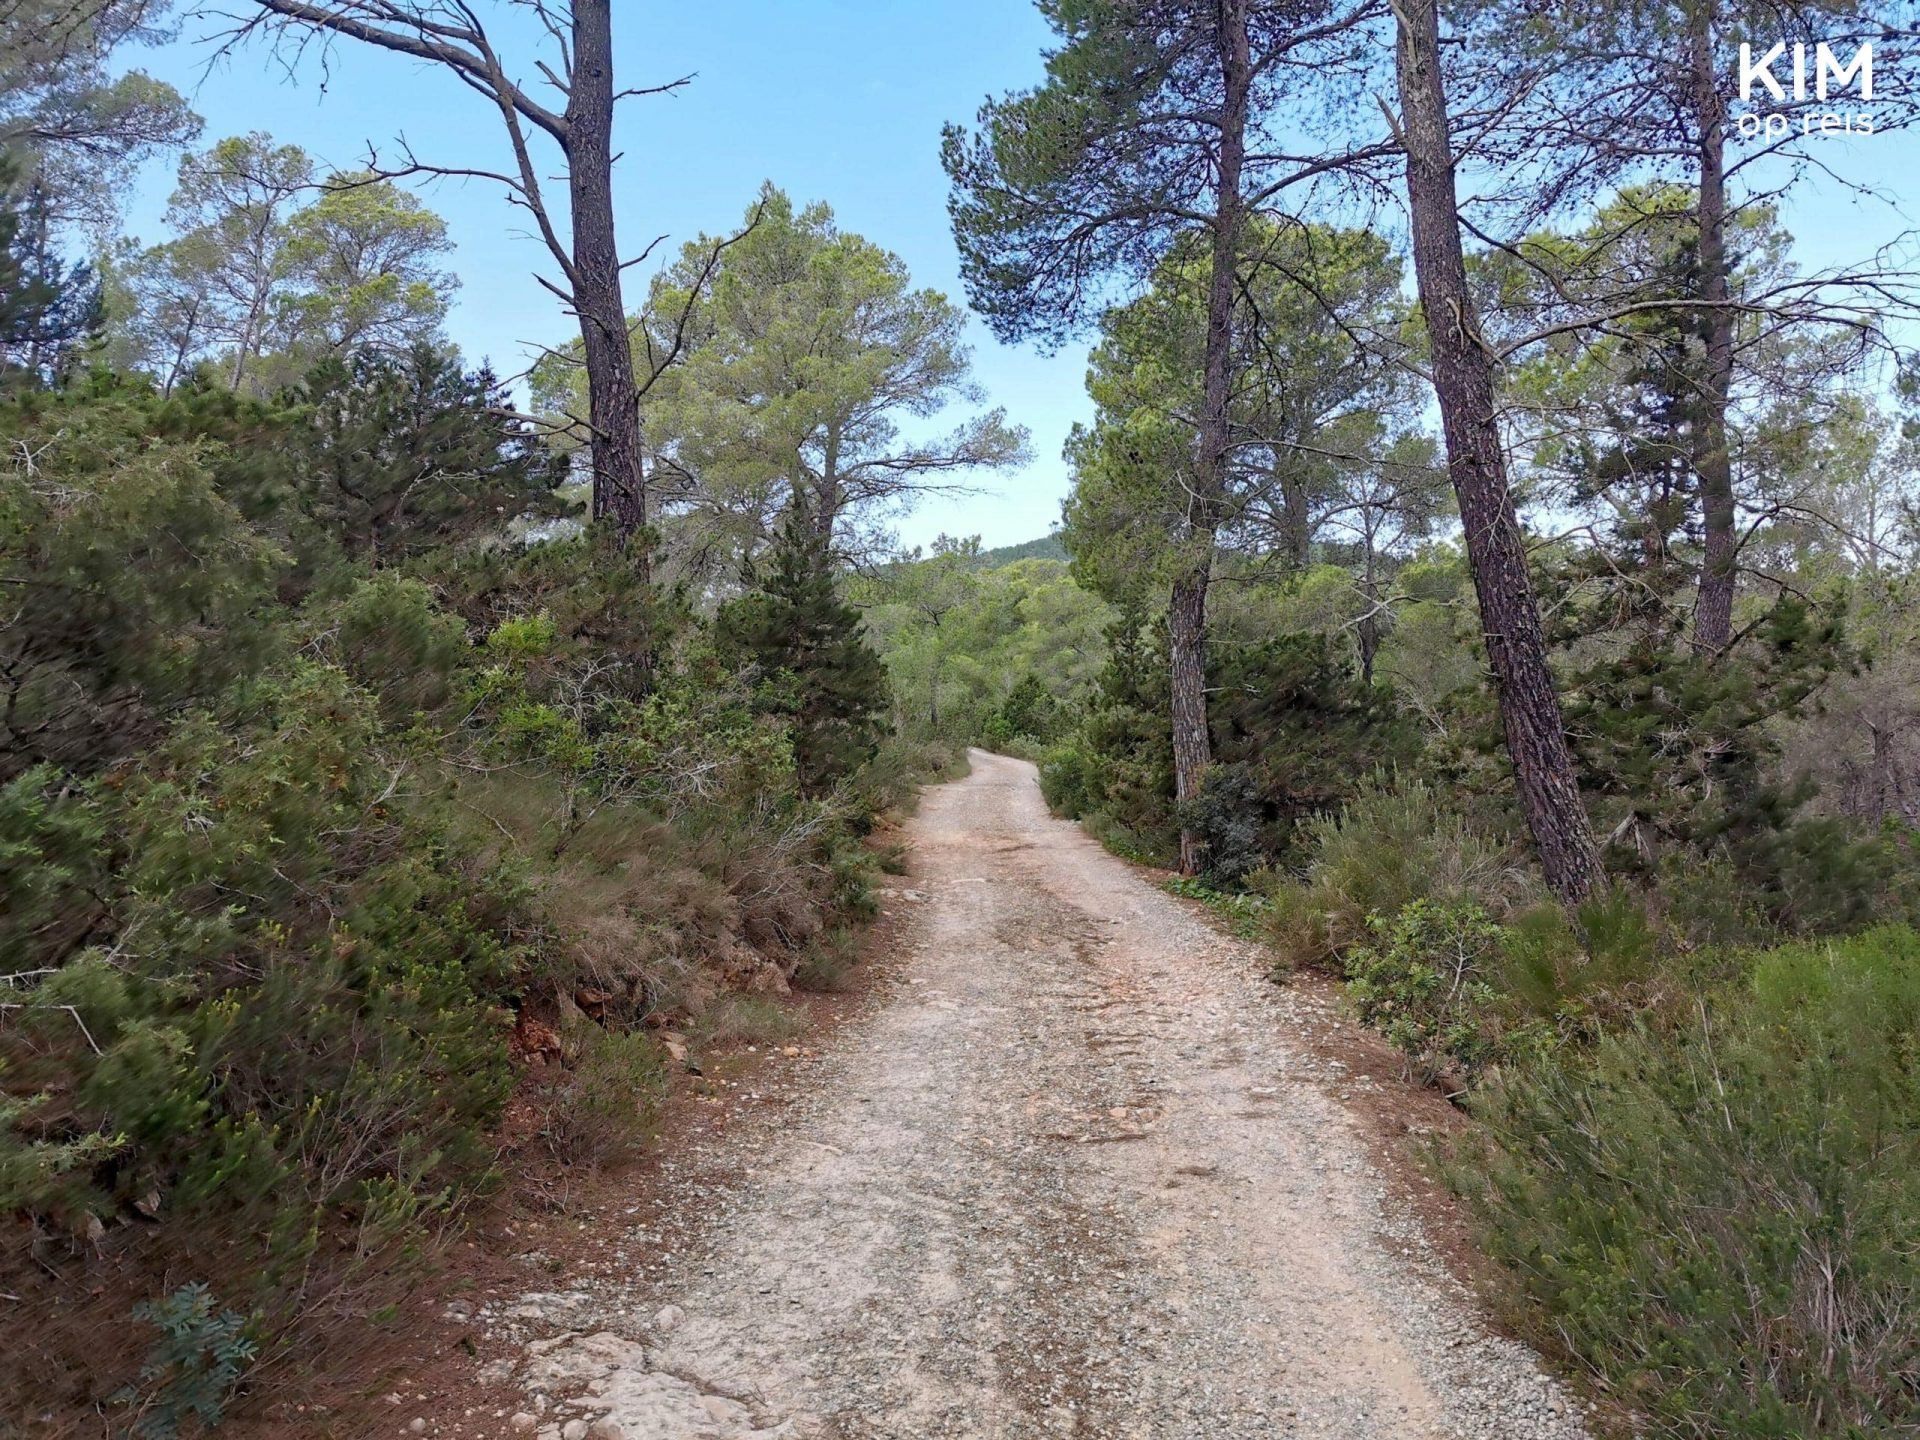 Walking tour Ibiza - unpaved walking path in a forest area